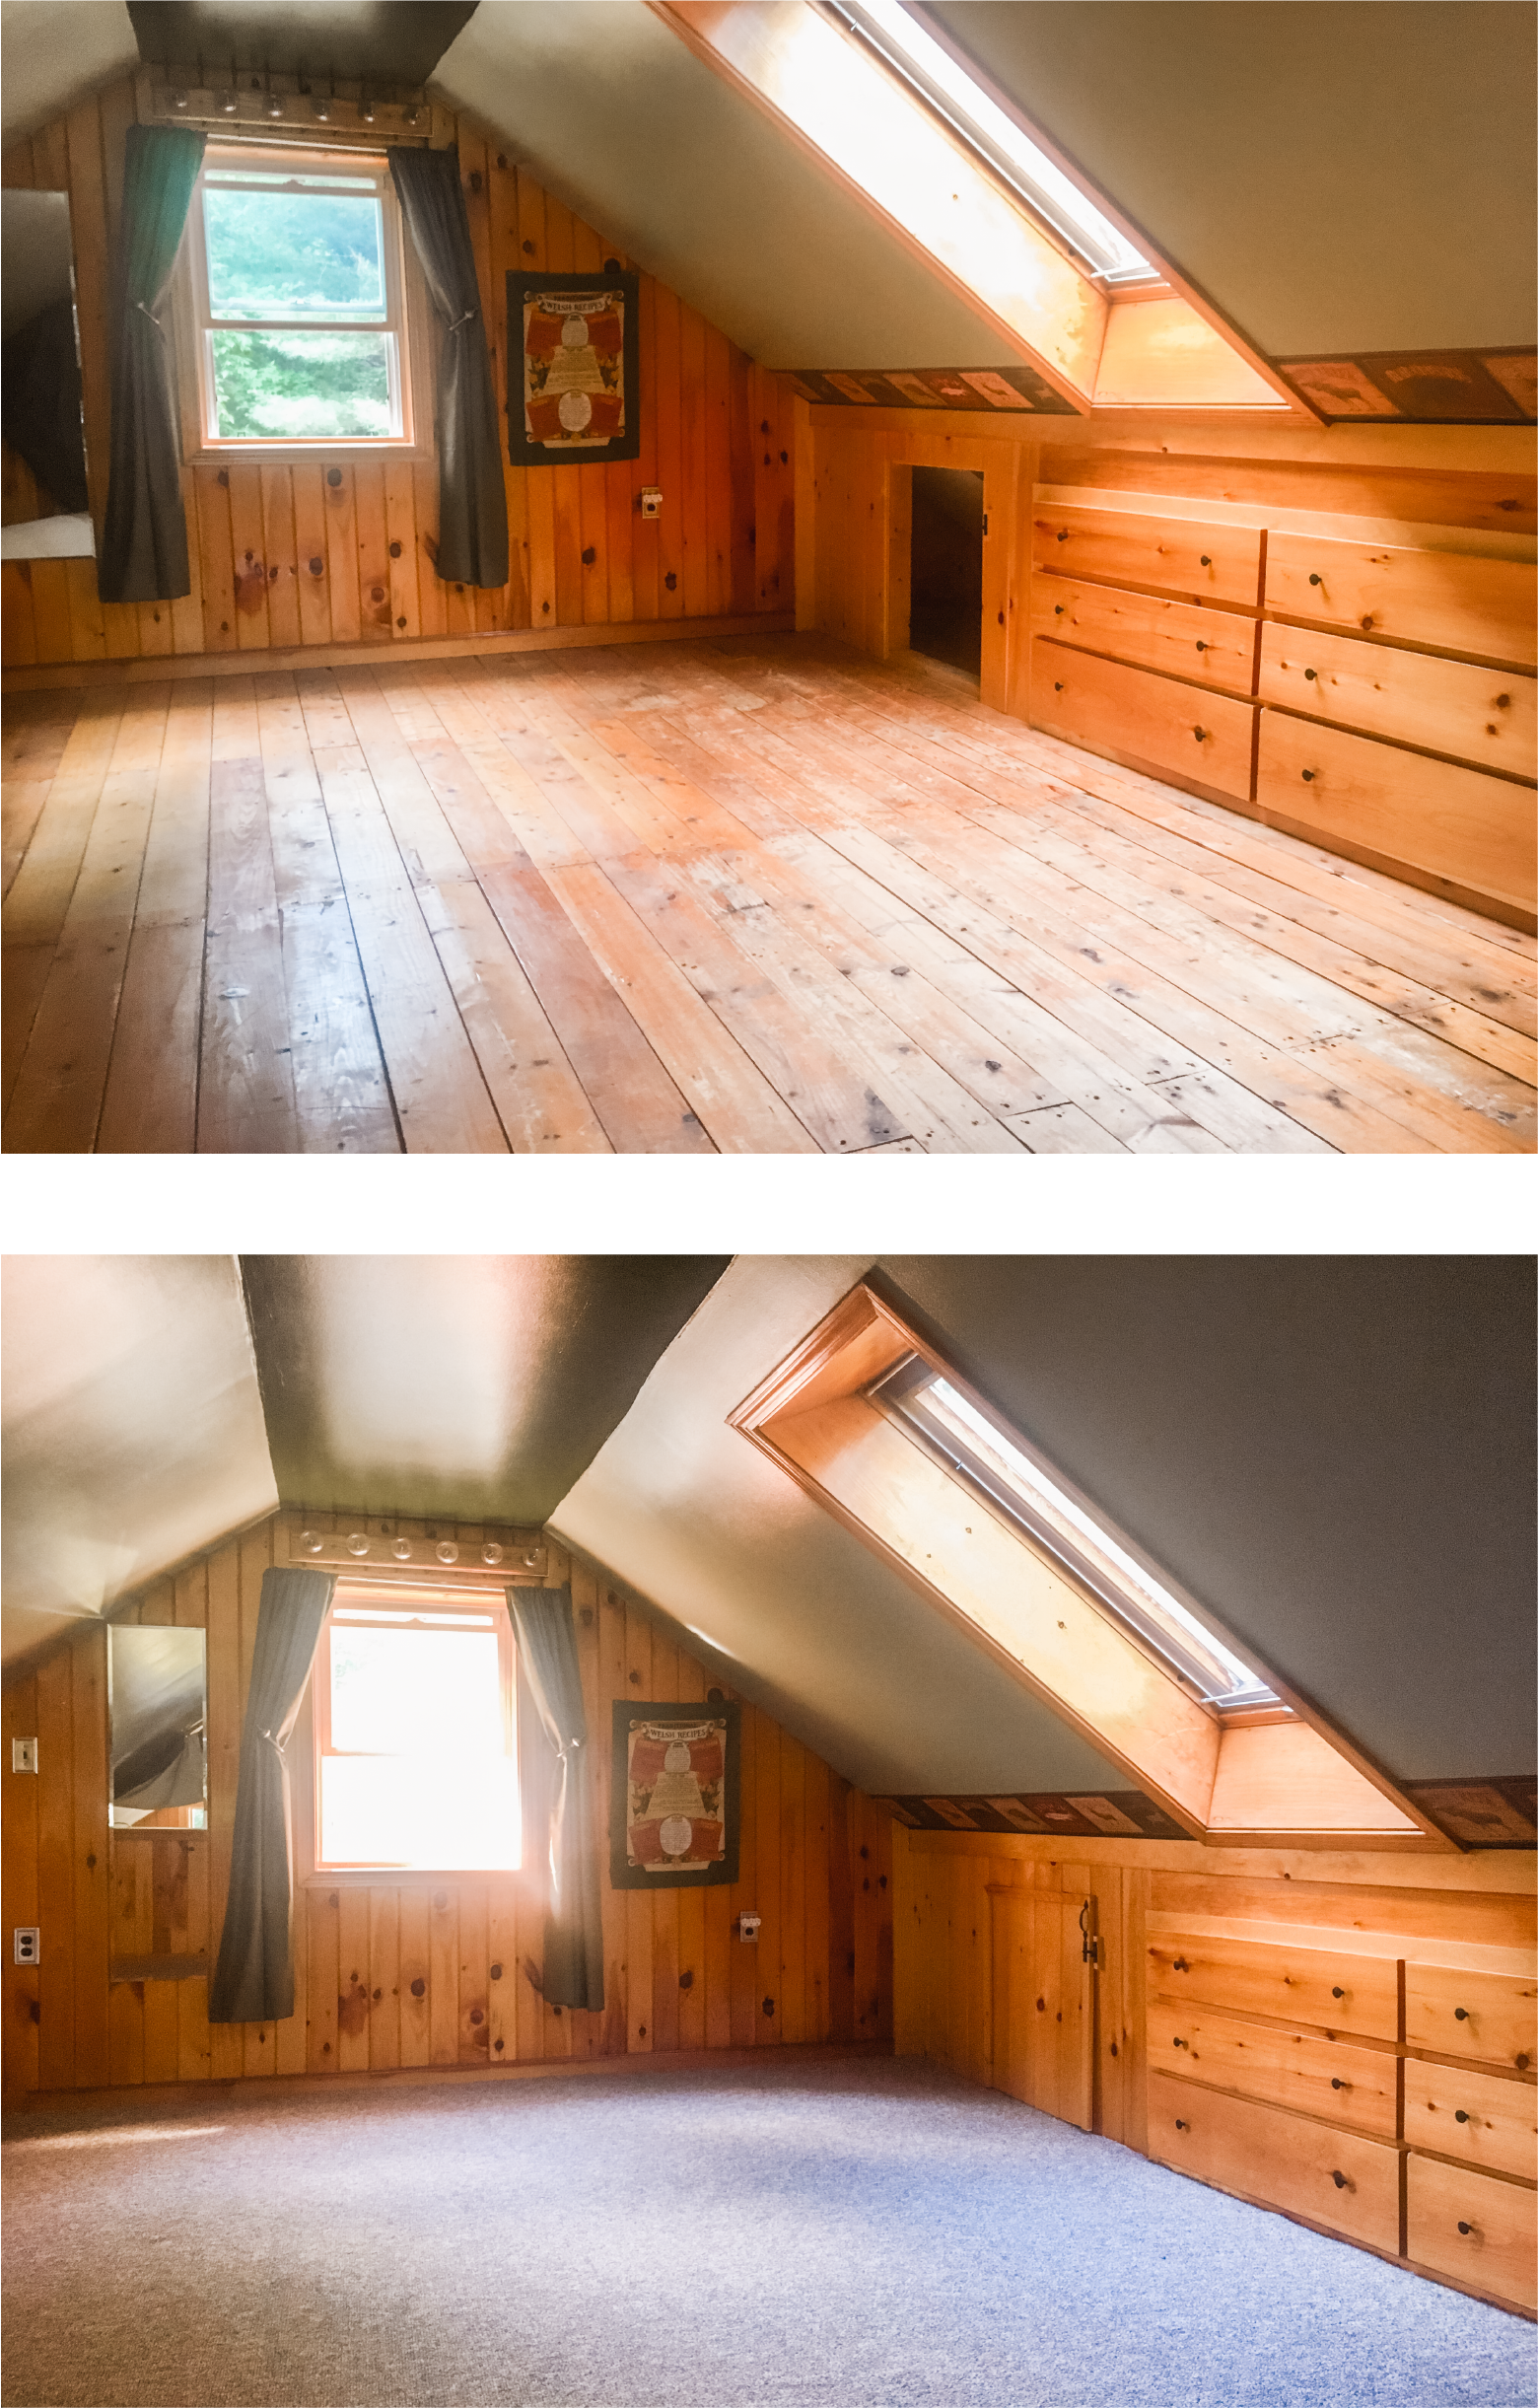 This is our Loft/ Guest Bedroom. 🛏 Directly below those floorboards is our Master Bedroom. When we have guests to stay, we can hear their every footstep 👣. So to mitigate the noise husband 1️⃣ screwed down the edges of each floor board... that eliminated a lot of the creaking. Then 2️⃣ we installed a thick pad and durable carpet on top of the boards... Mike and I took turns jumping around up there and you couldn't hear a thing in the Master Bedroom. It worked! 👍🏻 DIY tip ✔️, we found a smoking deal on remnant carpets at our local building overstock store (Mardens). Only $1/ square foot. 🤑 Cha-ching! Also, make sure you're ready with LOTS of extra box-cutter blades. Also also, if we had the 💲💲 this is definitely something we would have hired out. Don't look too closely because that DIY carpet install is a little rough around the edges. 😁 Scroll right 👉🏻 to see the installed carpet. Next step, new wall/ ceiling paint!